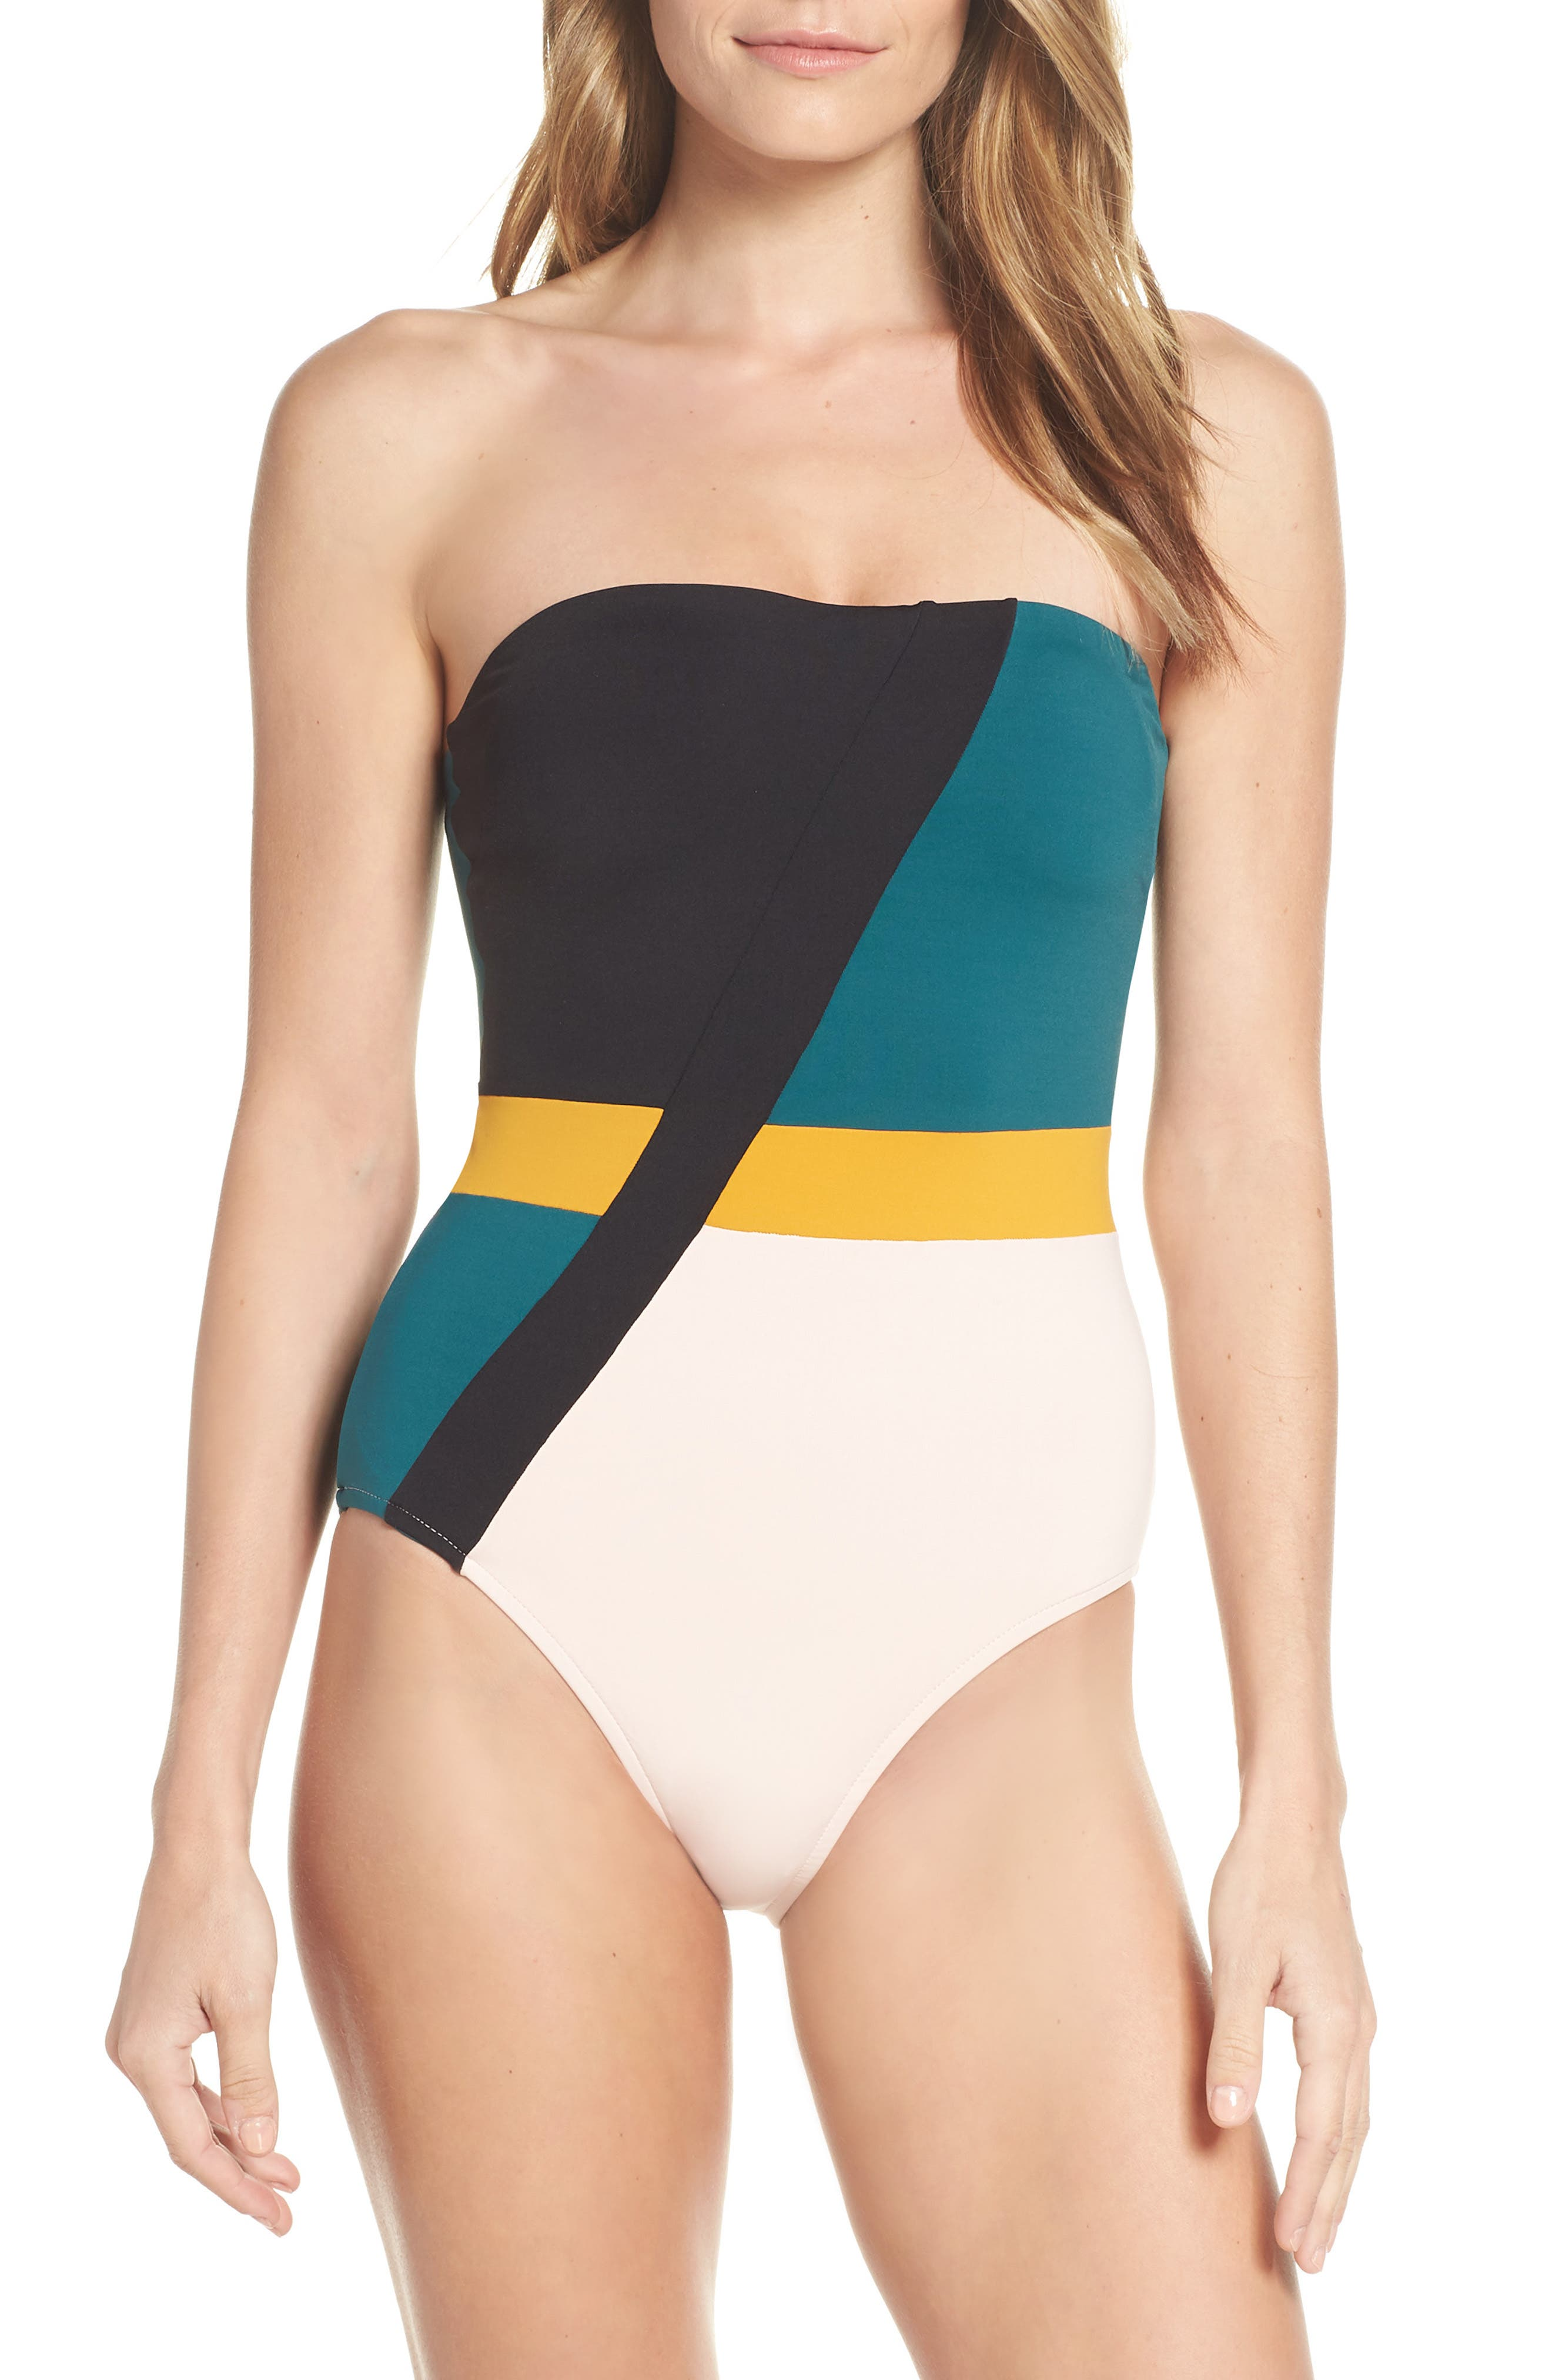 Seafolly Aralia Strapless One-Piece Swimsuit, US / 8 AU - Blue/green